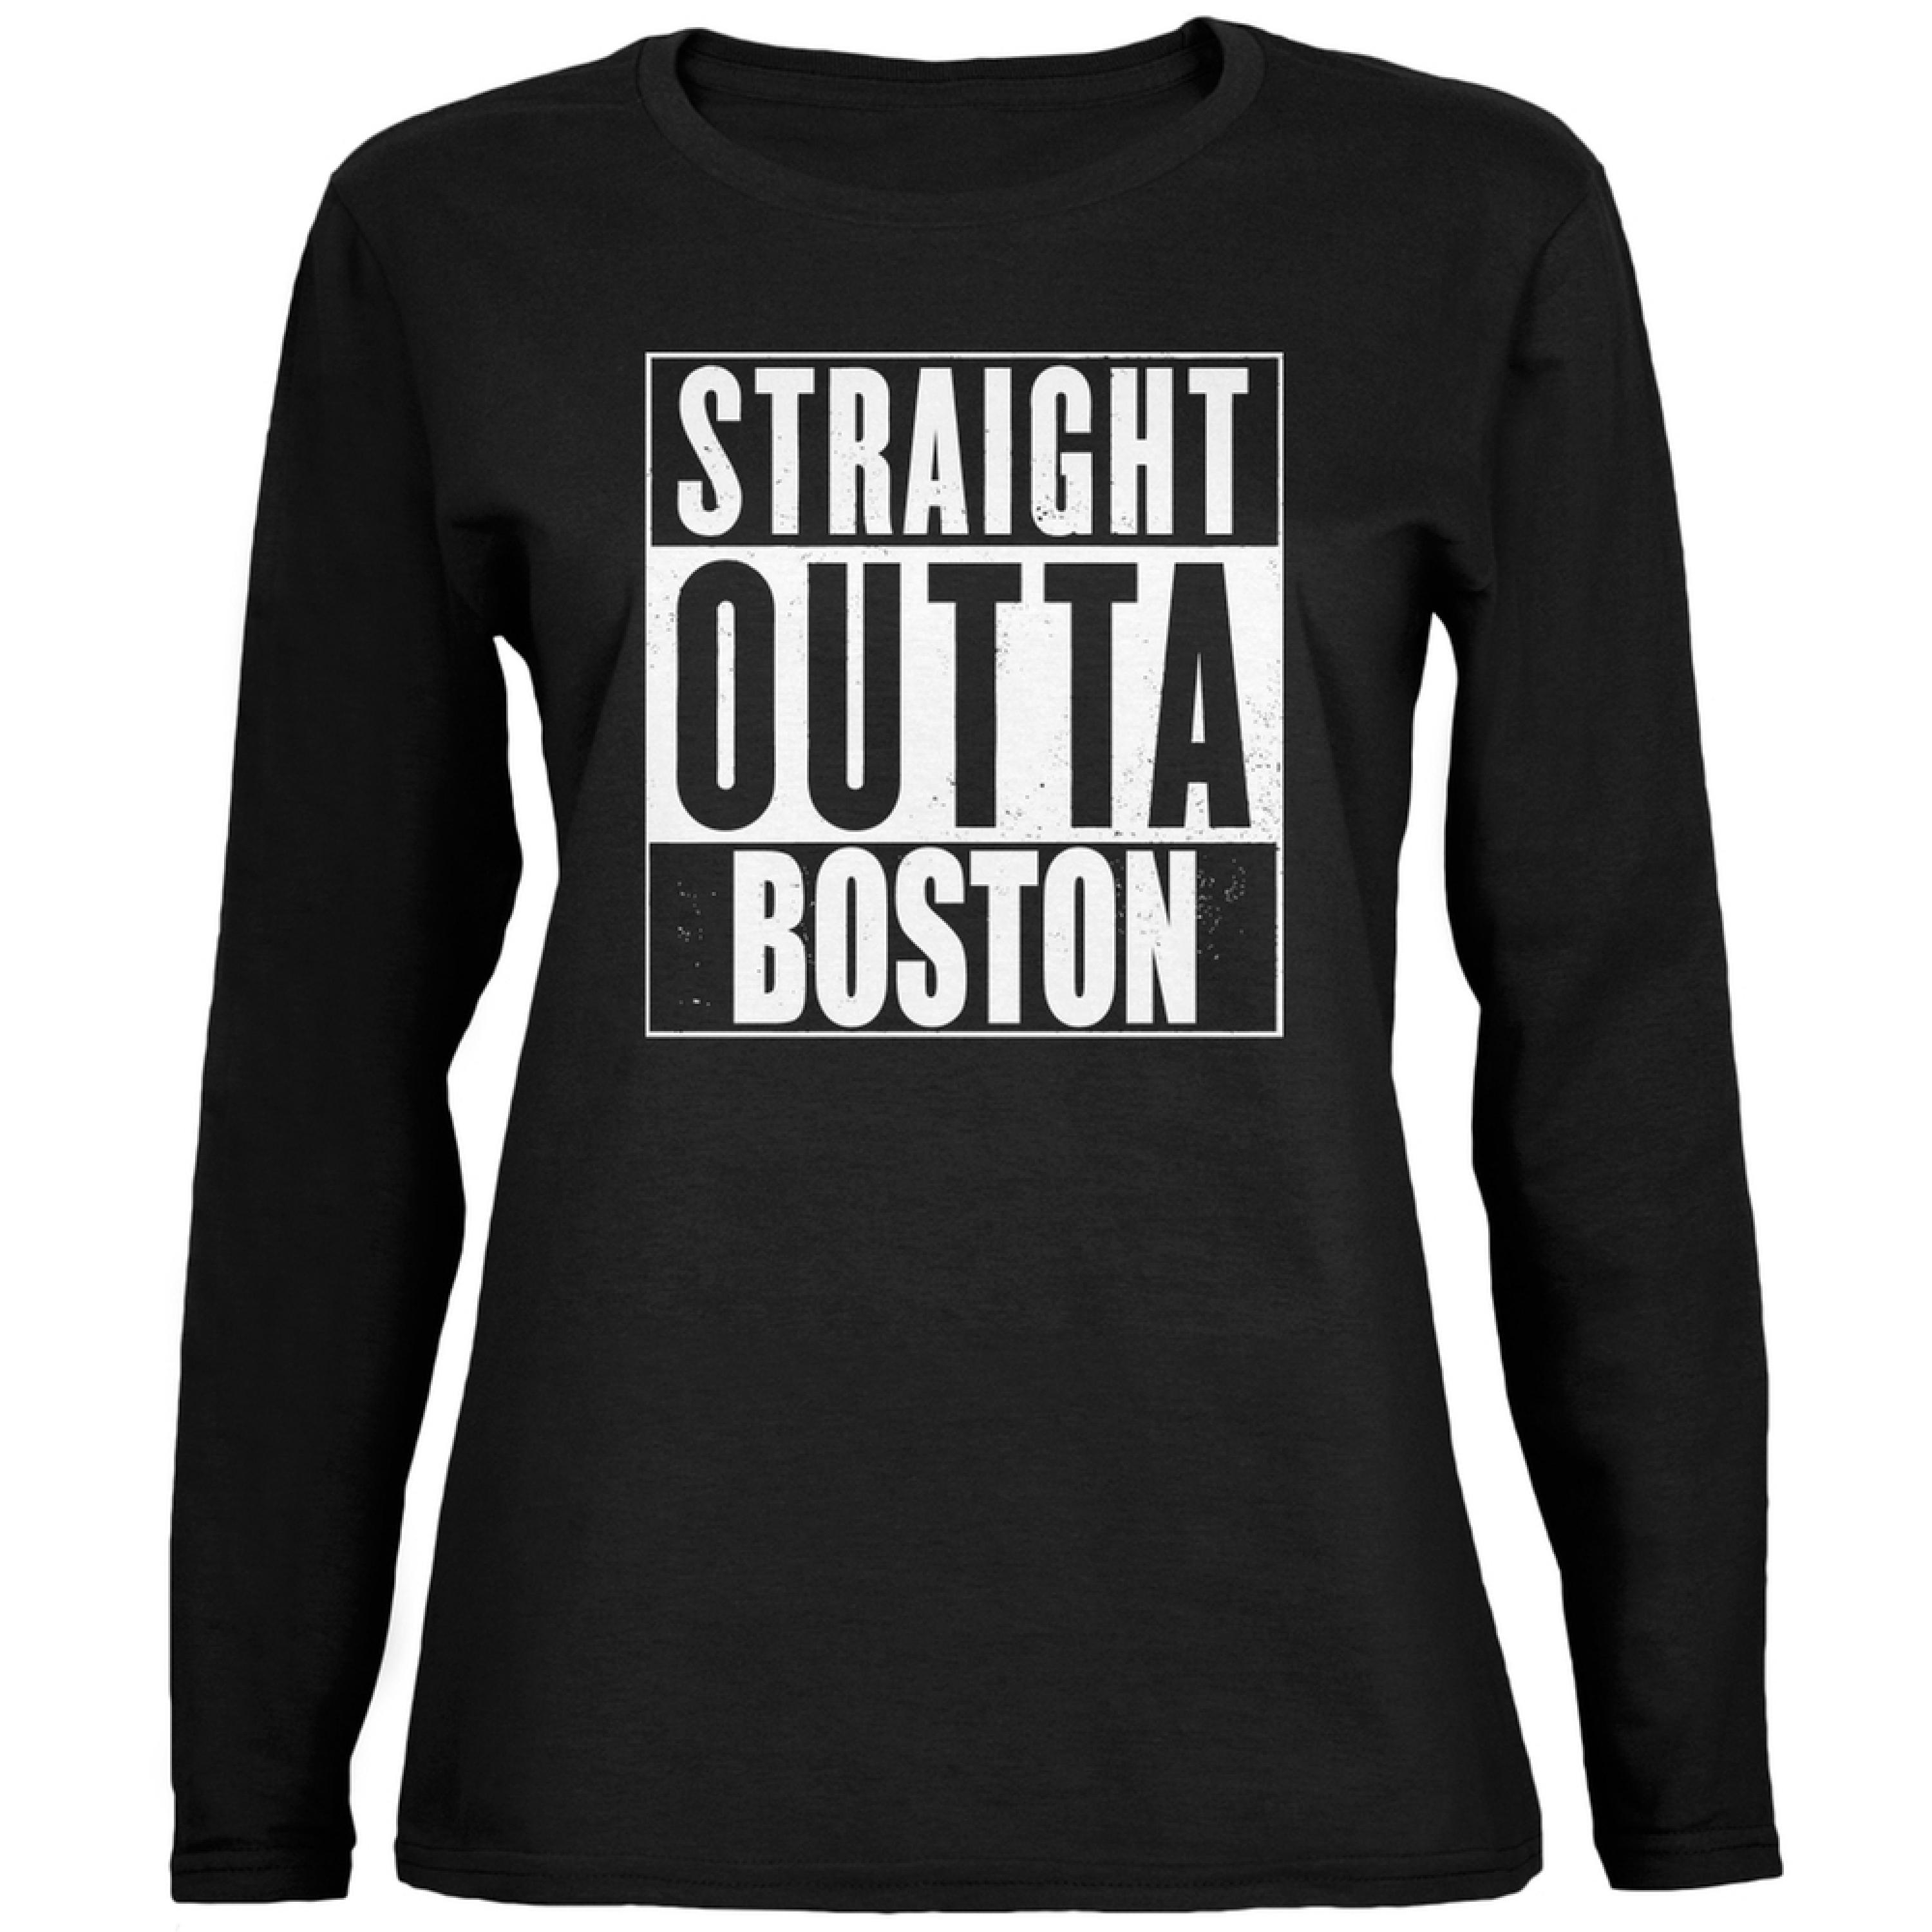 Straight Outta Boston Black Womens Long Sleeve T-Shirt